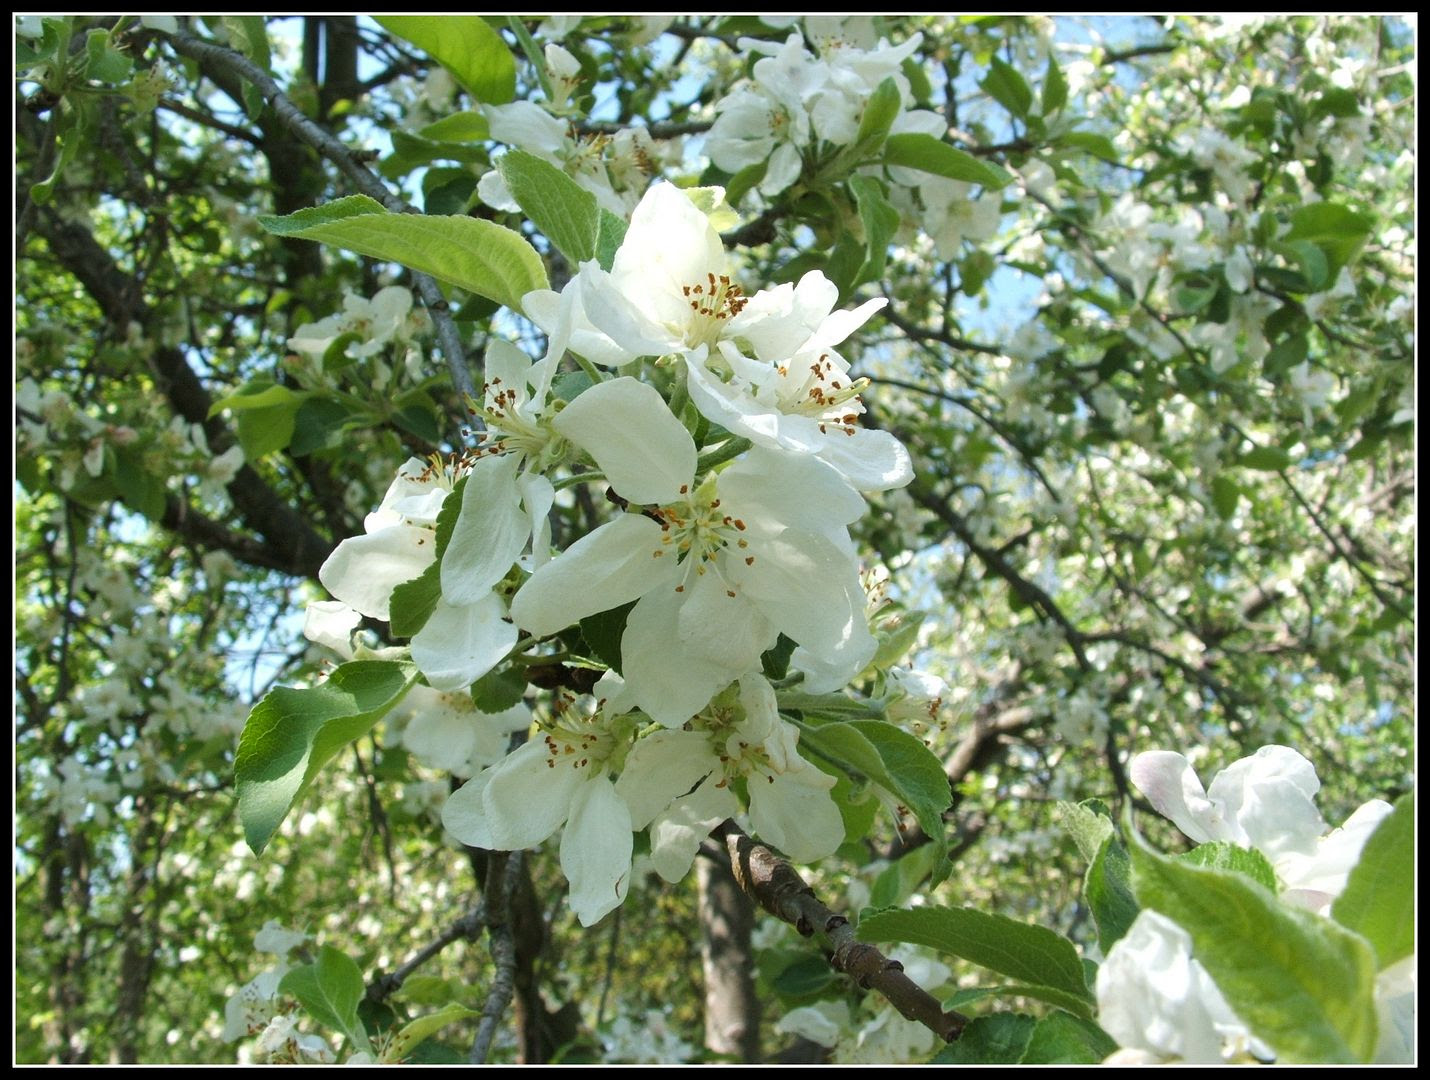 Blooming Blossoms by Angie Ouellette-Tower for godsgrowinggarden.com photo 012_zps2bd82e4b.jpg